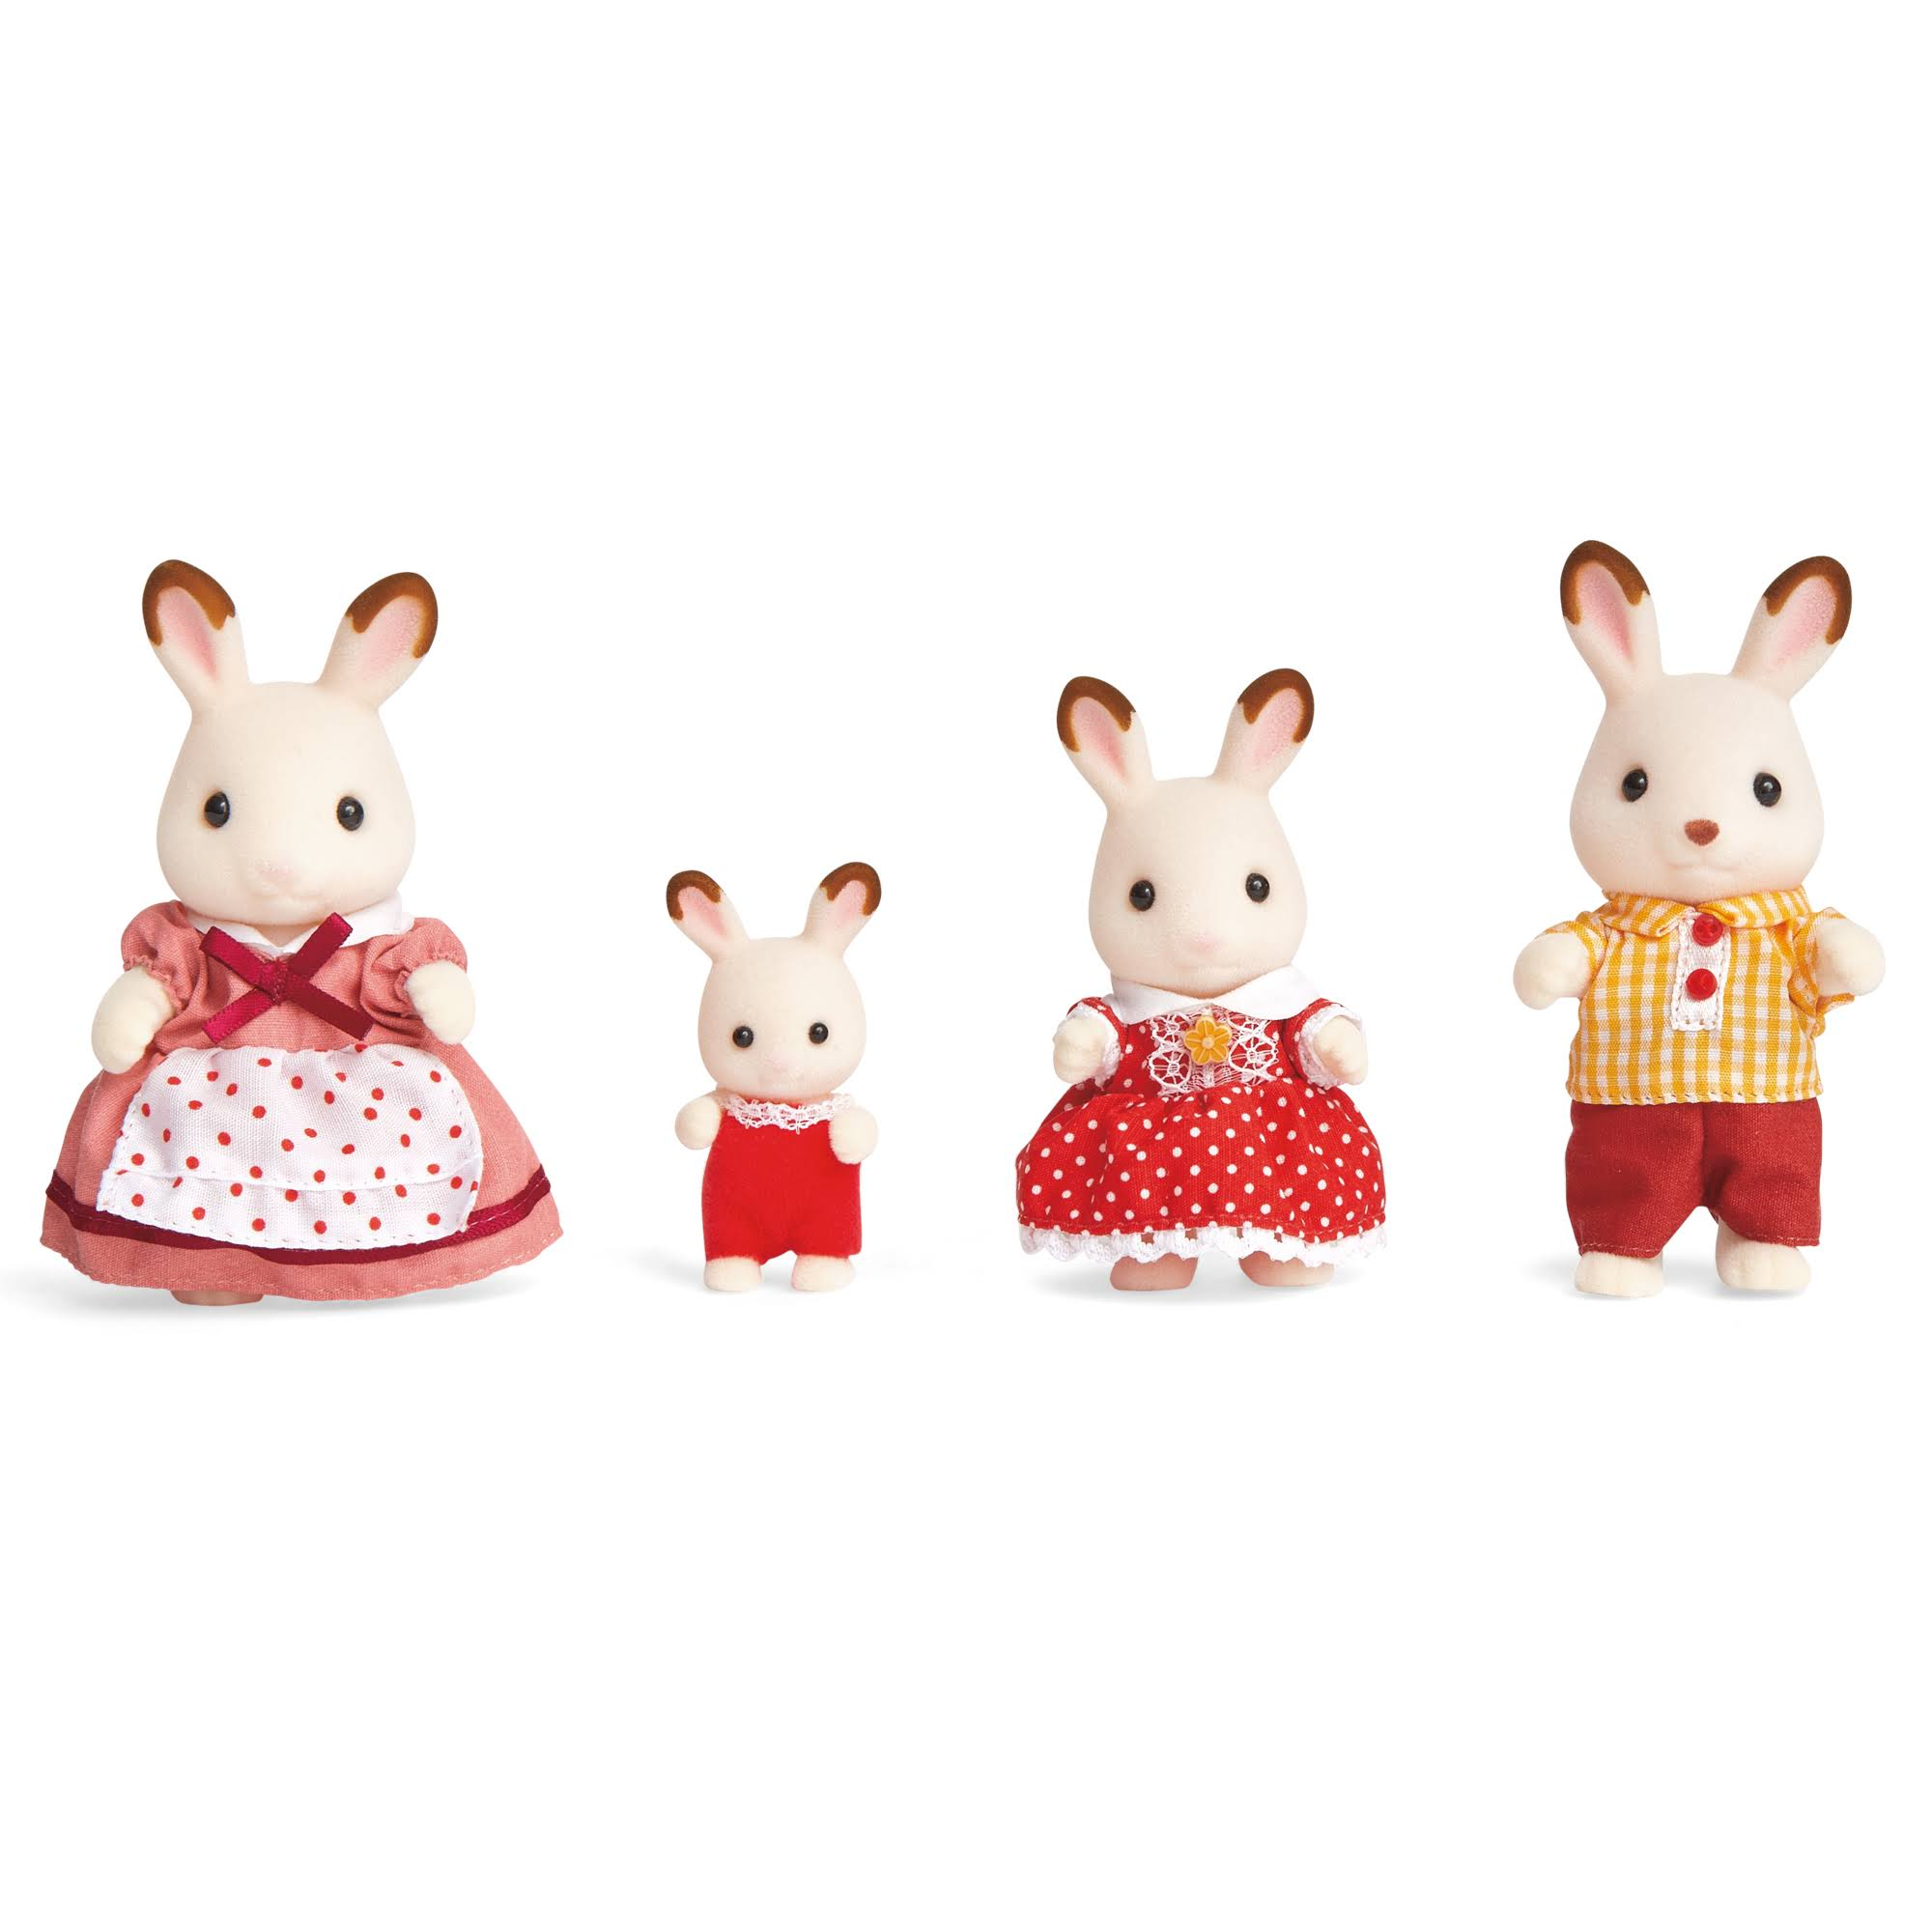 Calico Critters Hopscotch Rabbit Family Poseable Detailed Figures - 4ct